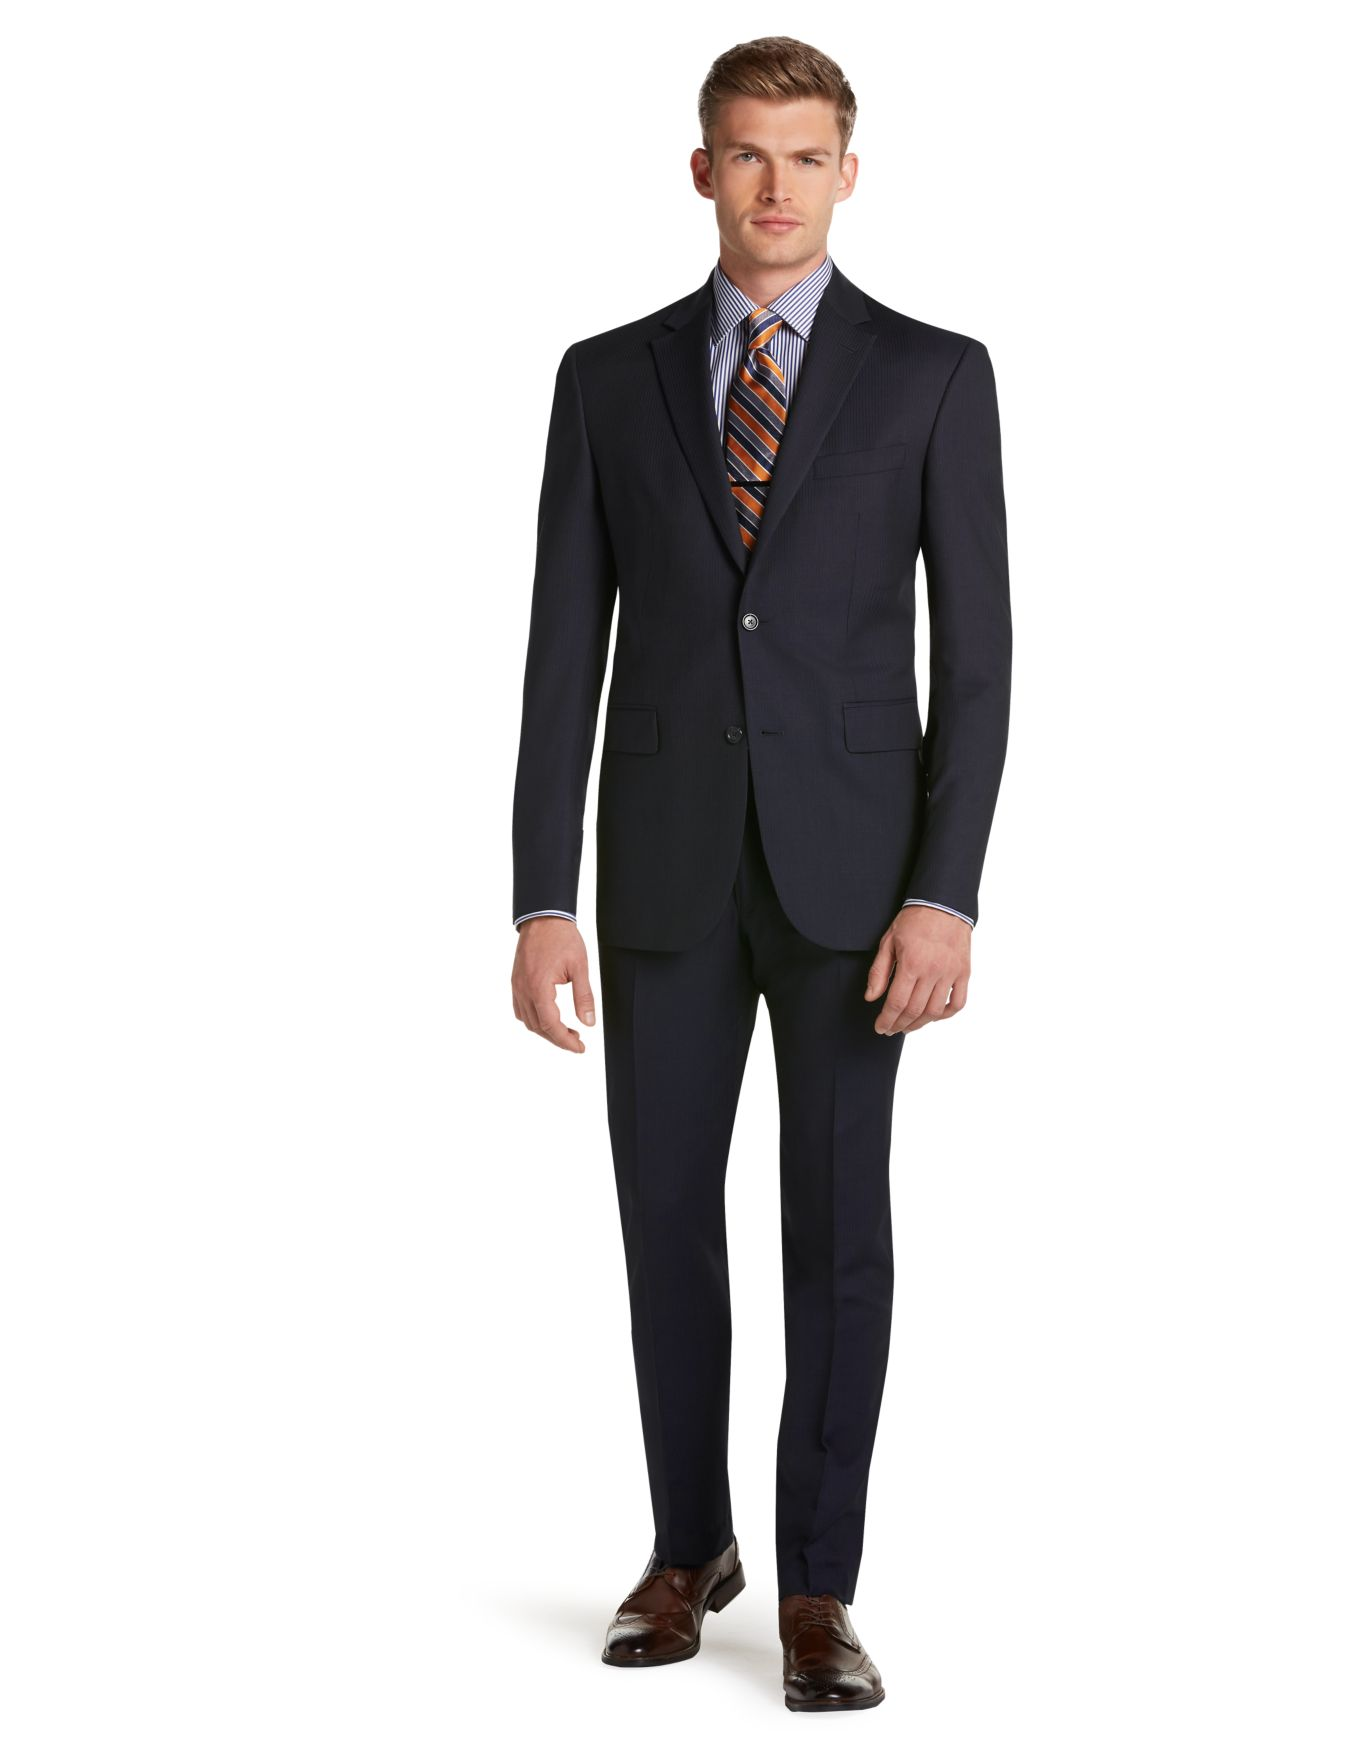 Labor day suit sale go suits for Jos a bank tailored fit vs slim fit shirts